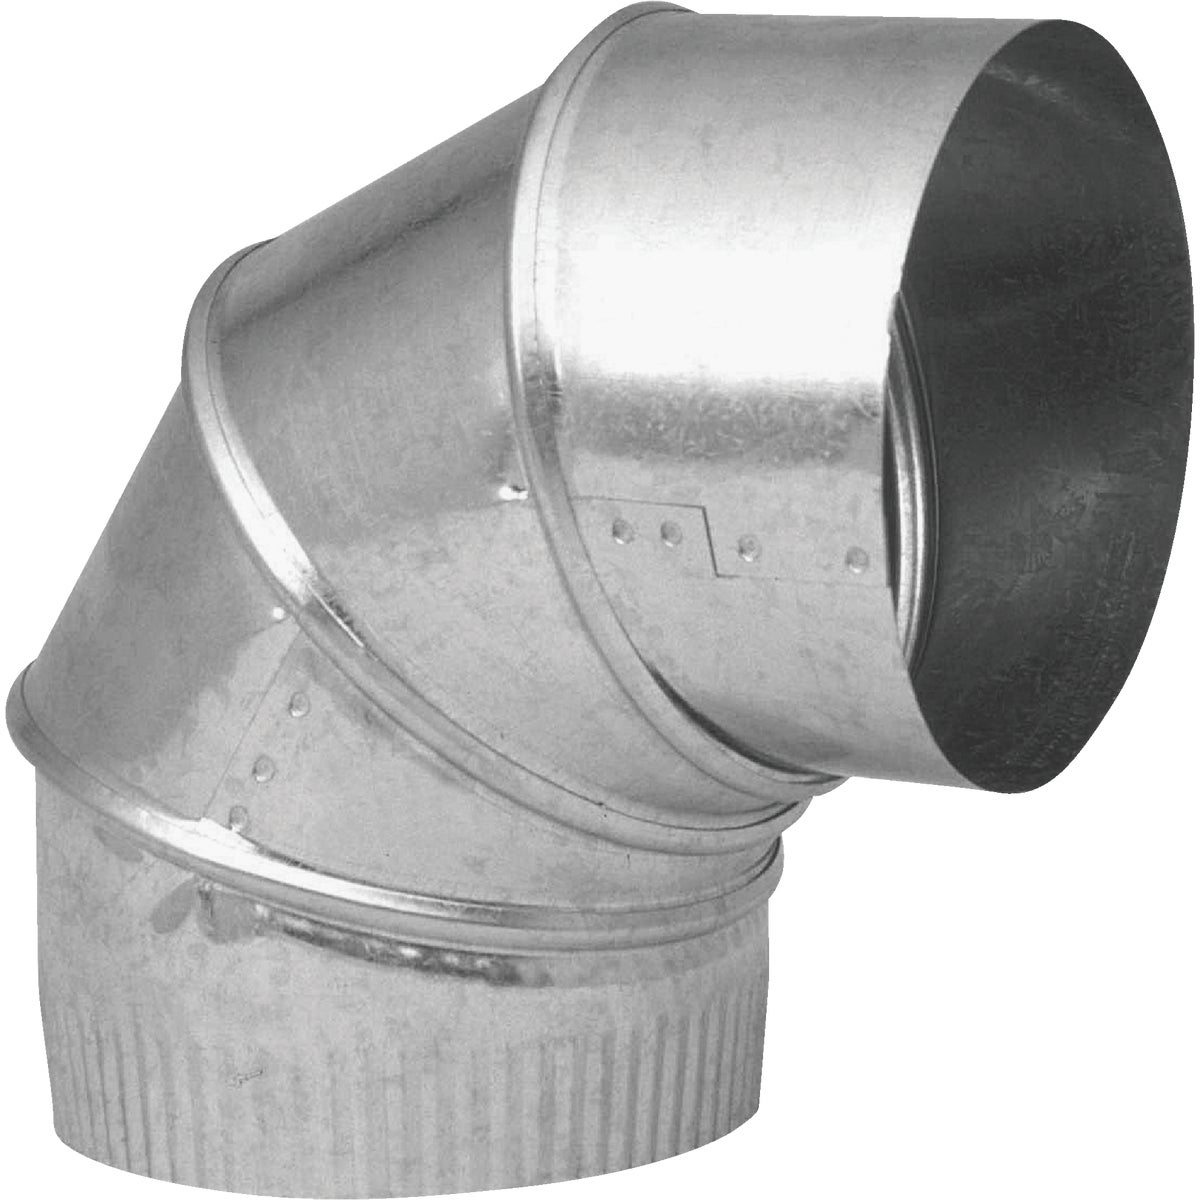 "3"" 30GA GALV ADJ ELBOW - GV0282-C by Imperial Mfg Group"